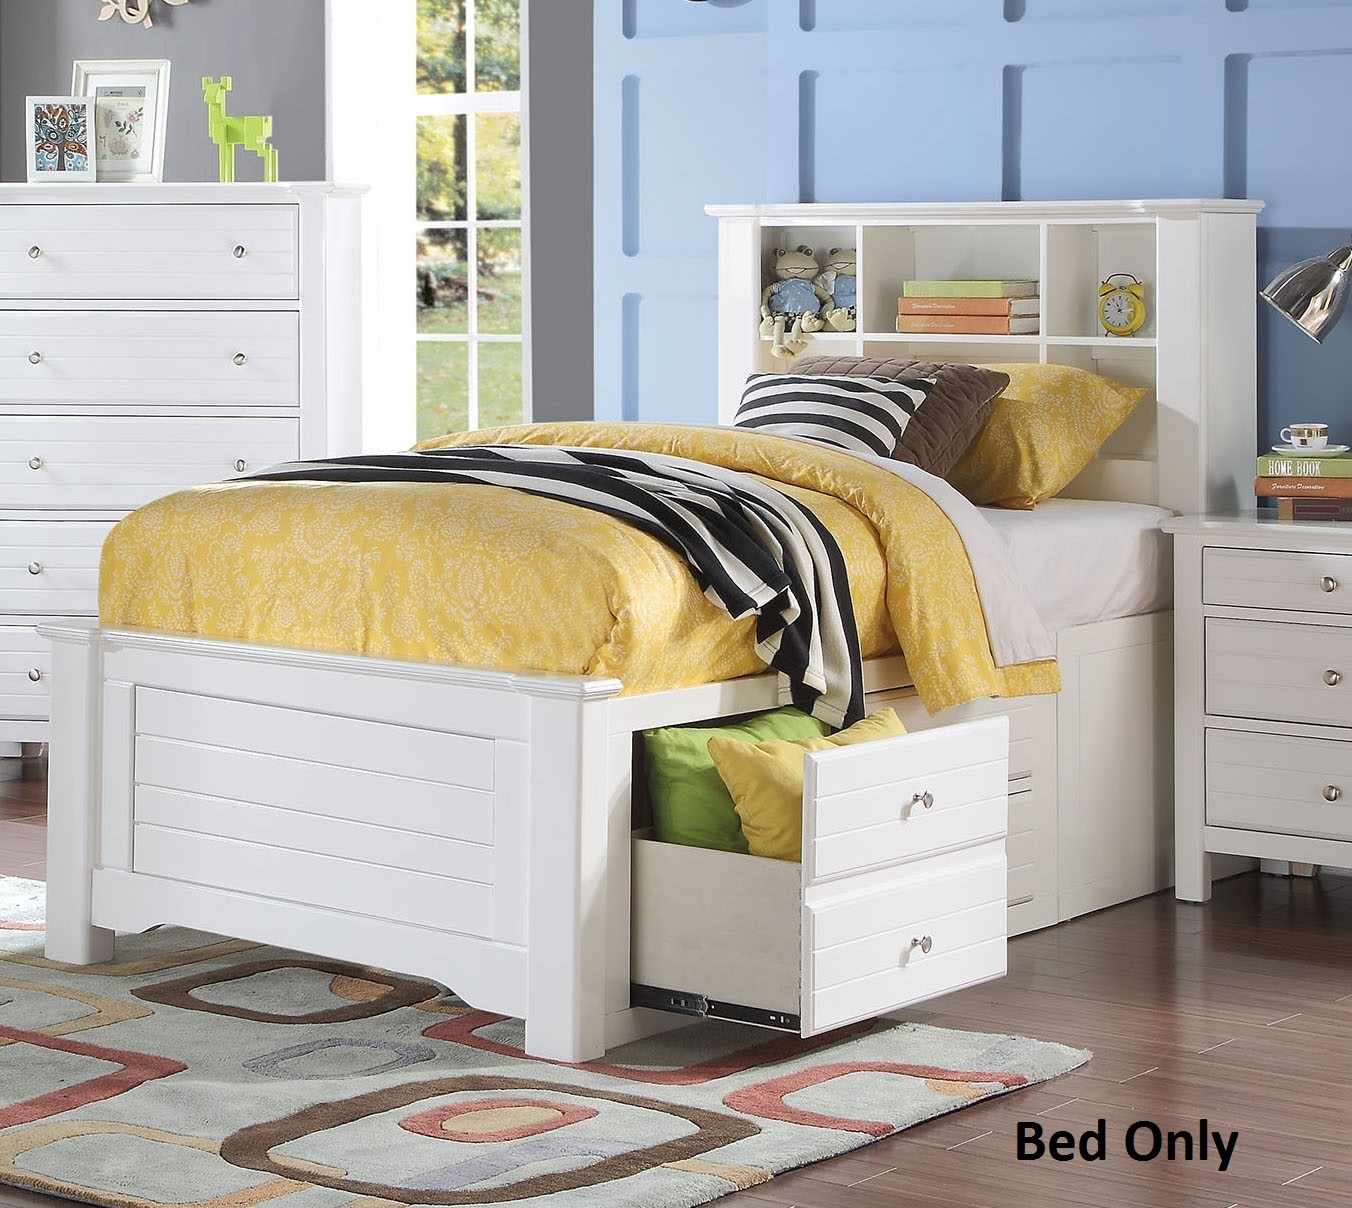 Mallowsea 30420T Twin Size Bed with Storage Rail Drawers 6 Compartment Bookcase Headboard Low Profile Footboard and Pine... by Overstock